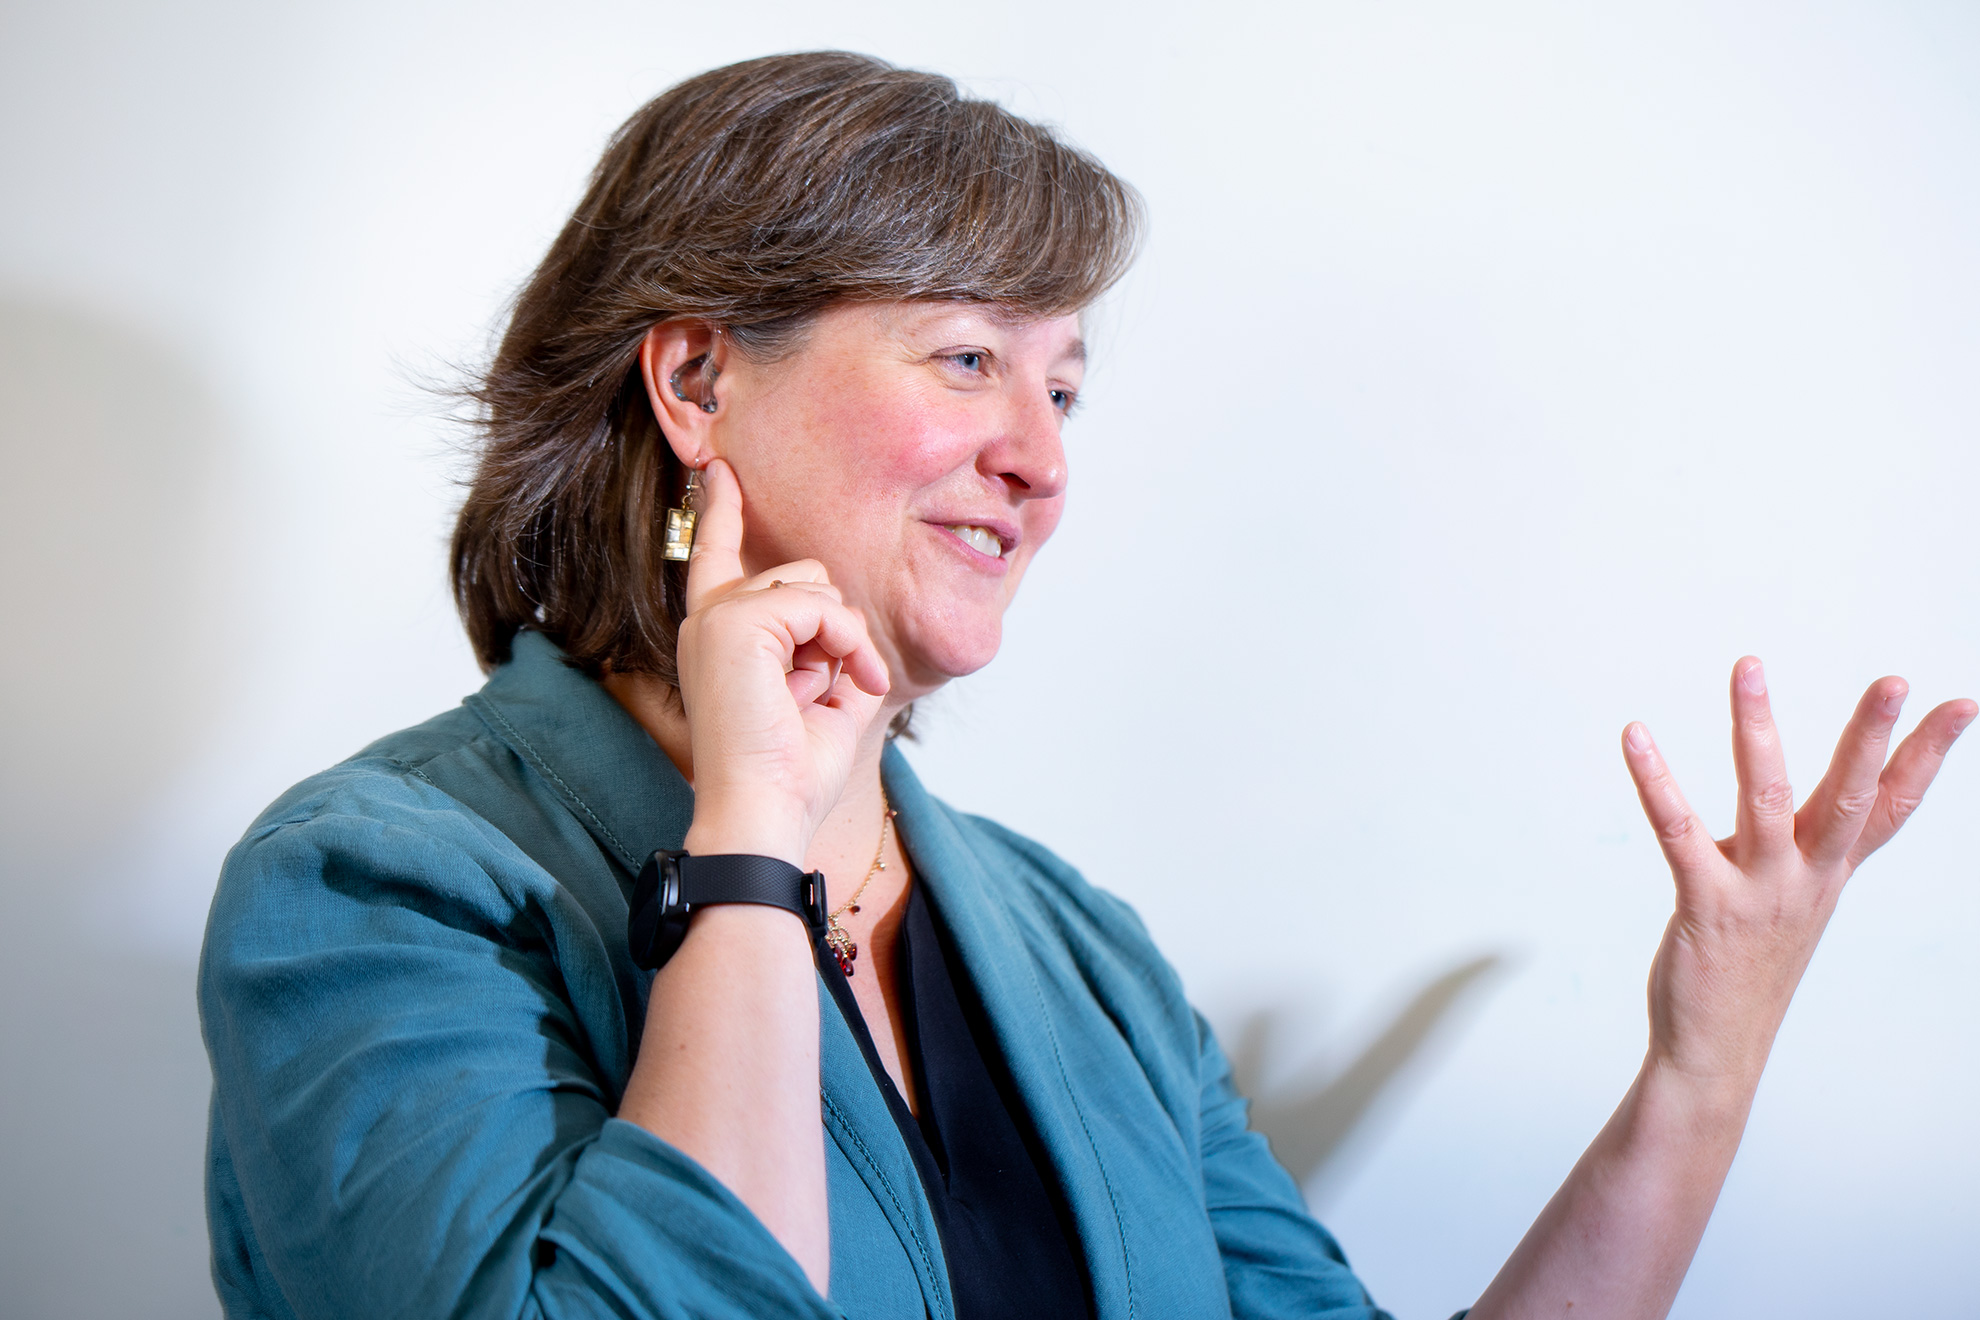 Woman gesturing and wearing behind the ear hearing aids